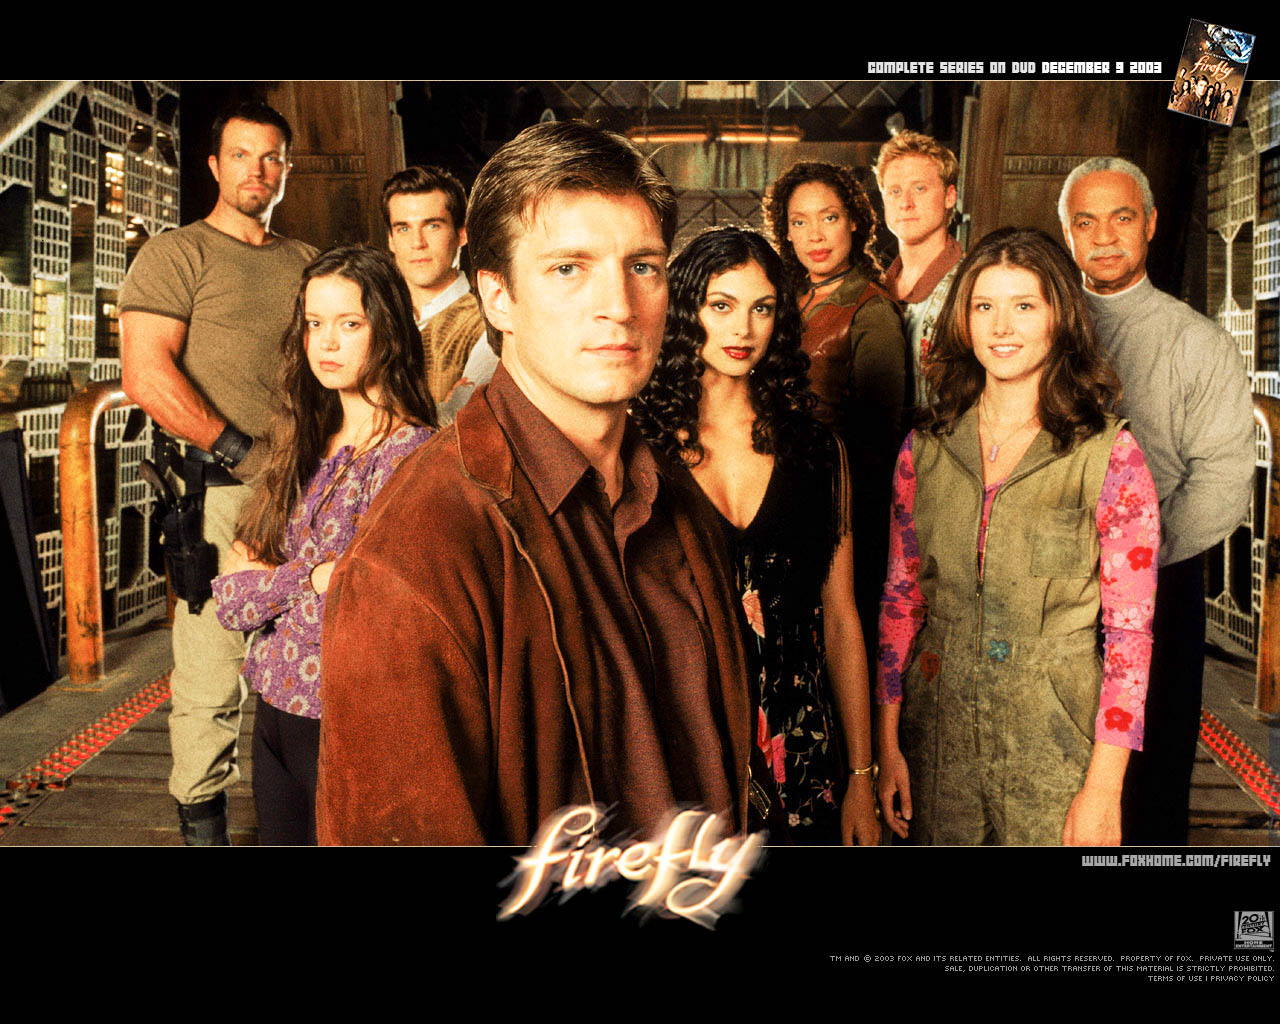 tv series high quality torrent download